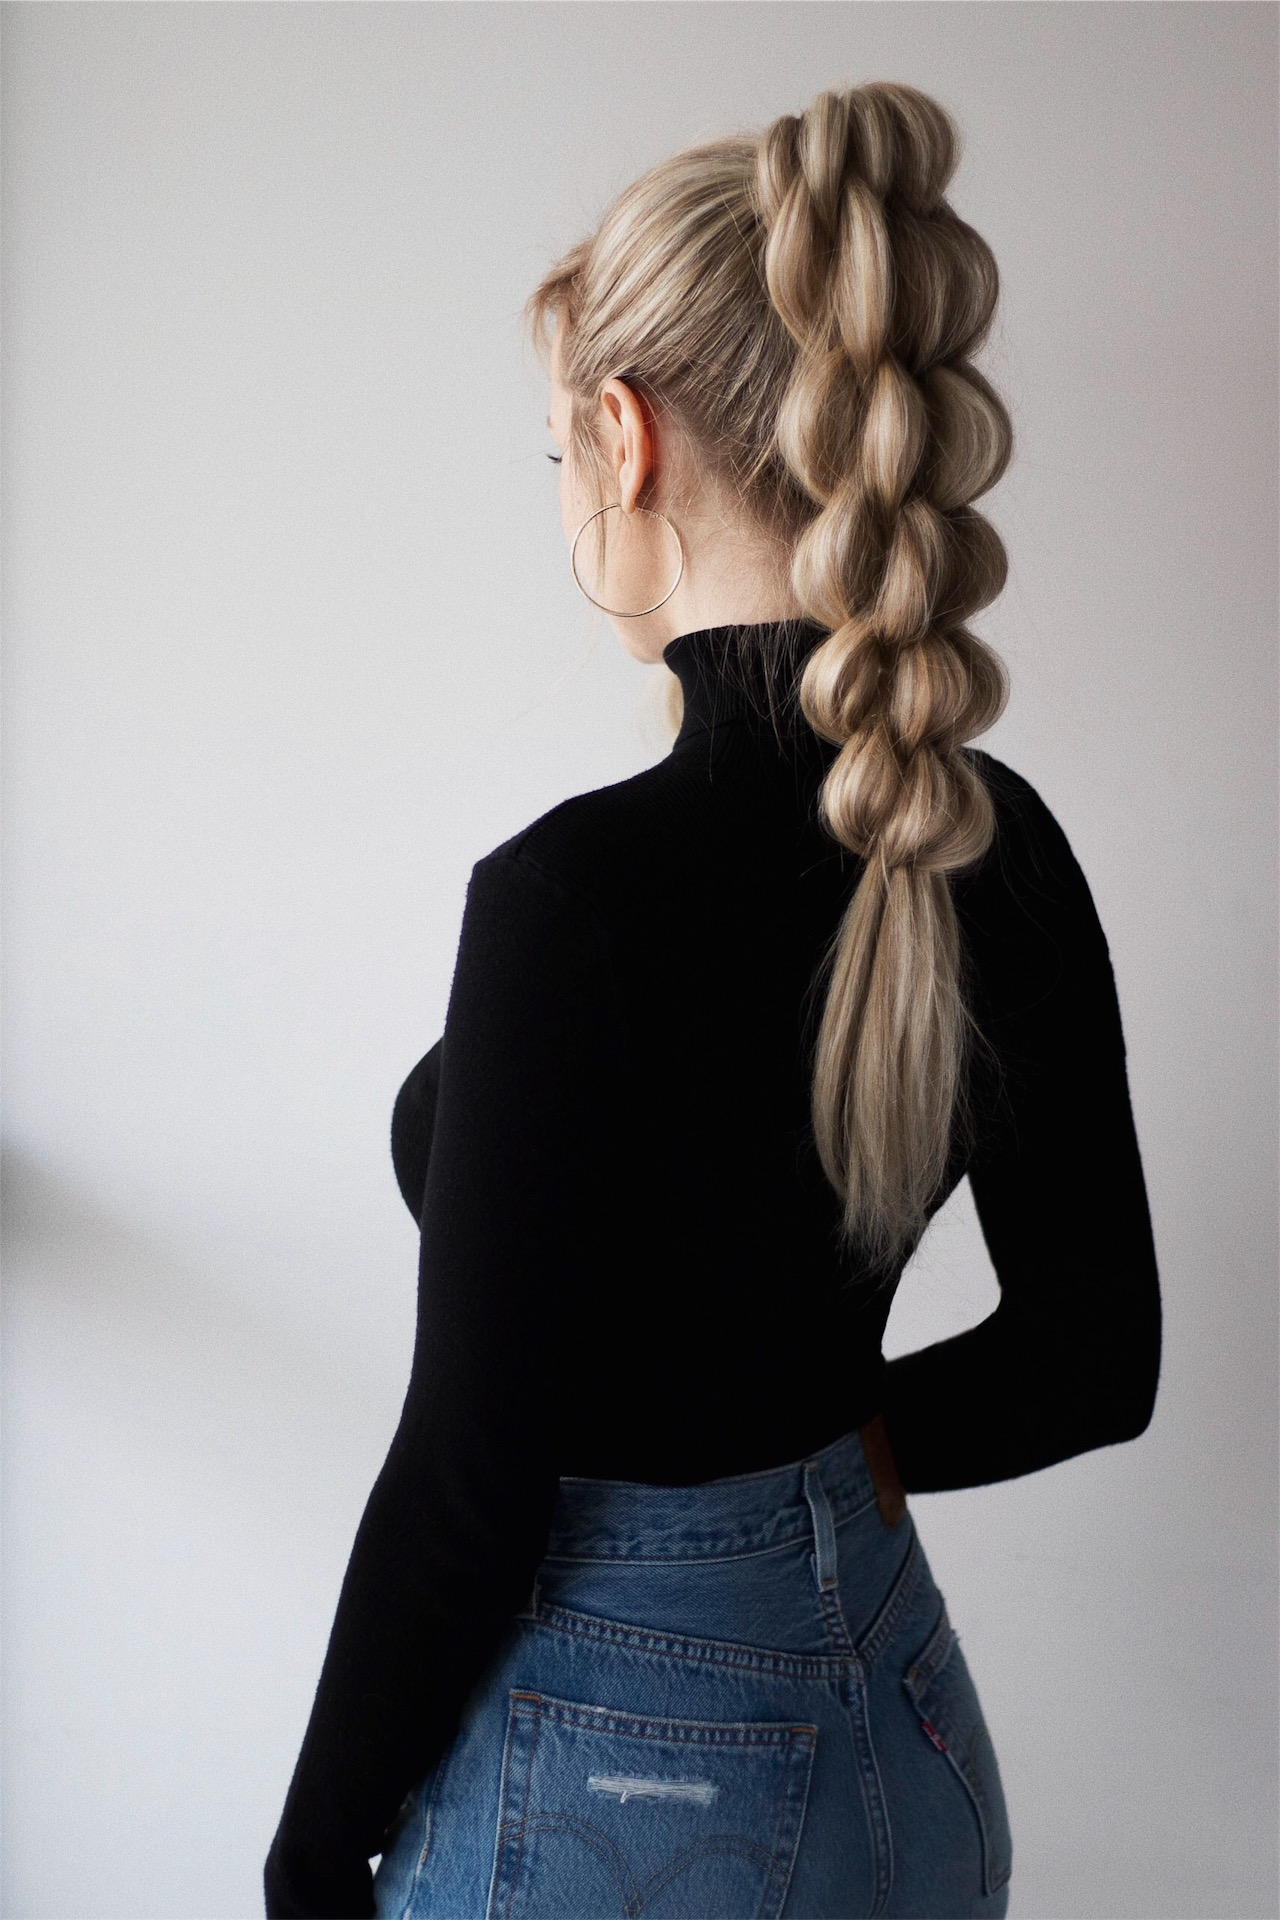 BRAIDED PONYTAIL HAIR TUTORIAL | www.alexgaboury.com